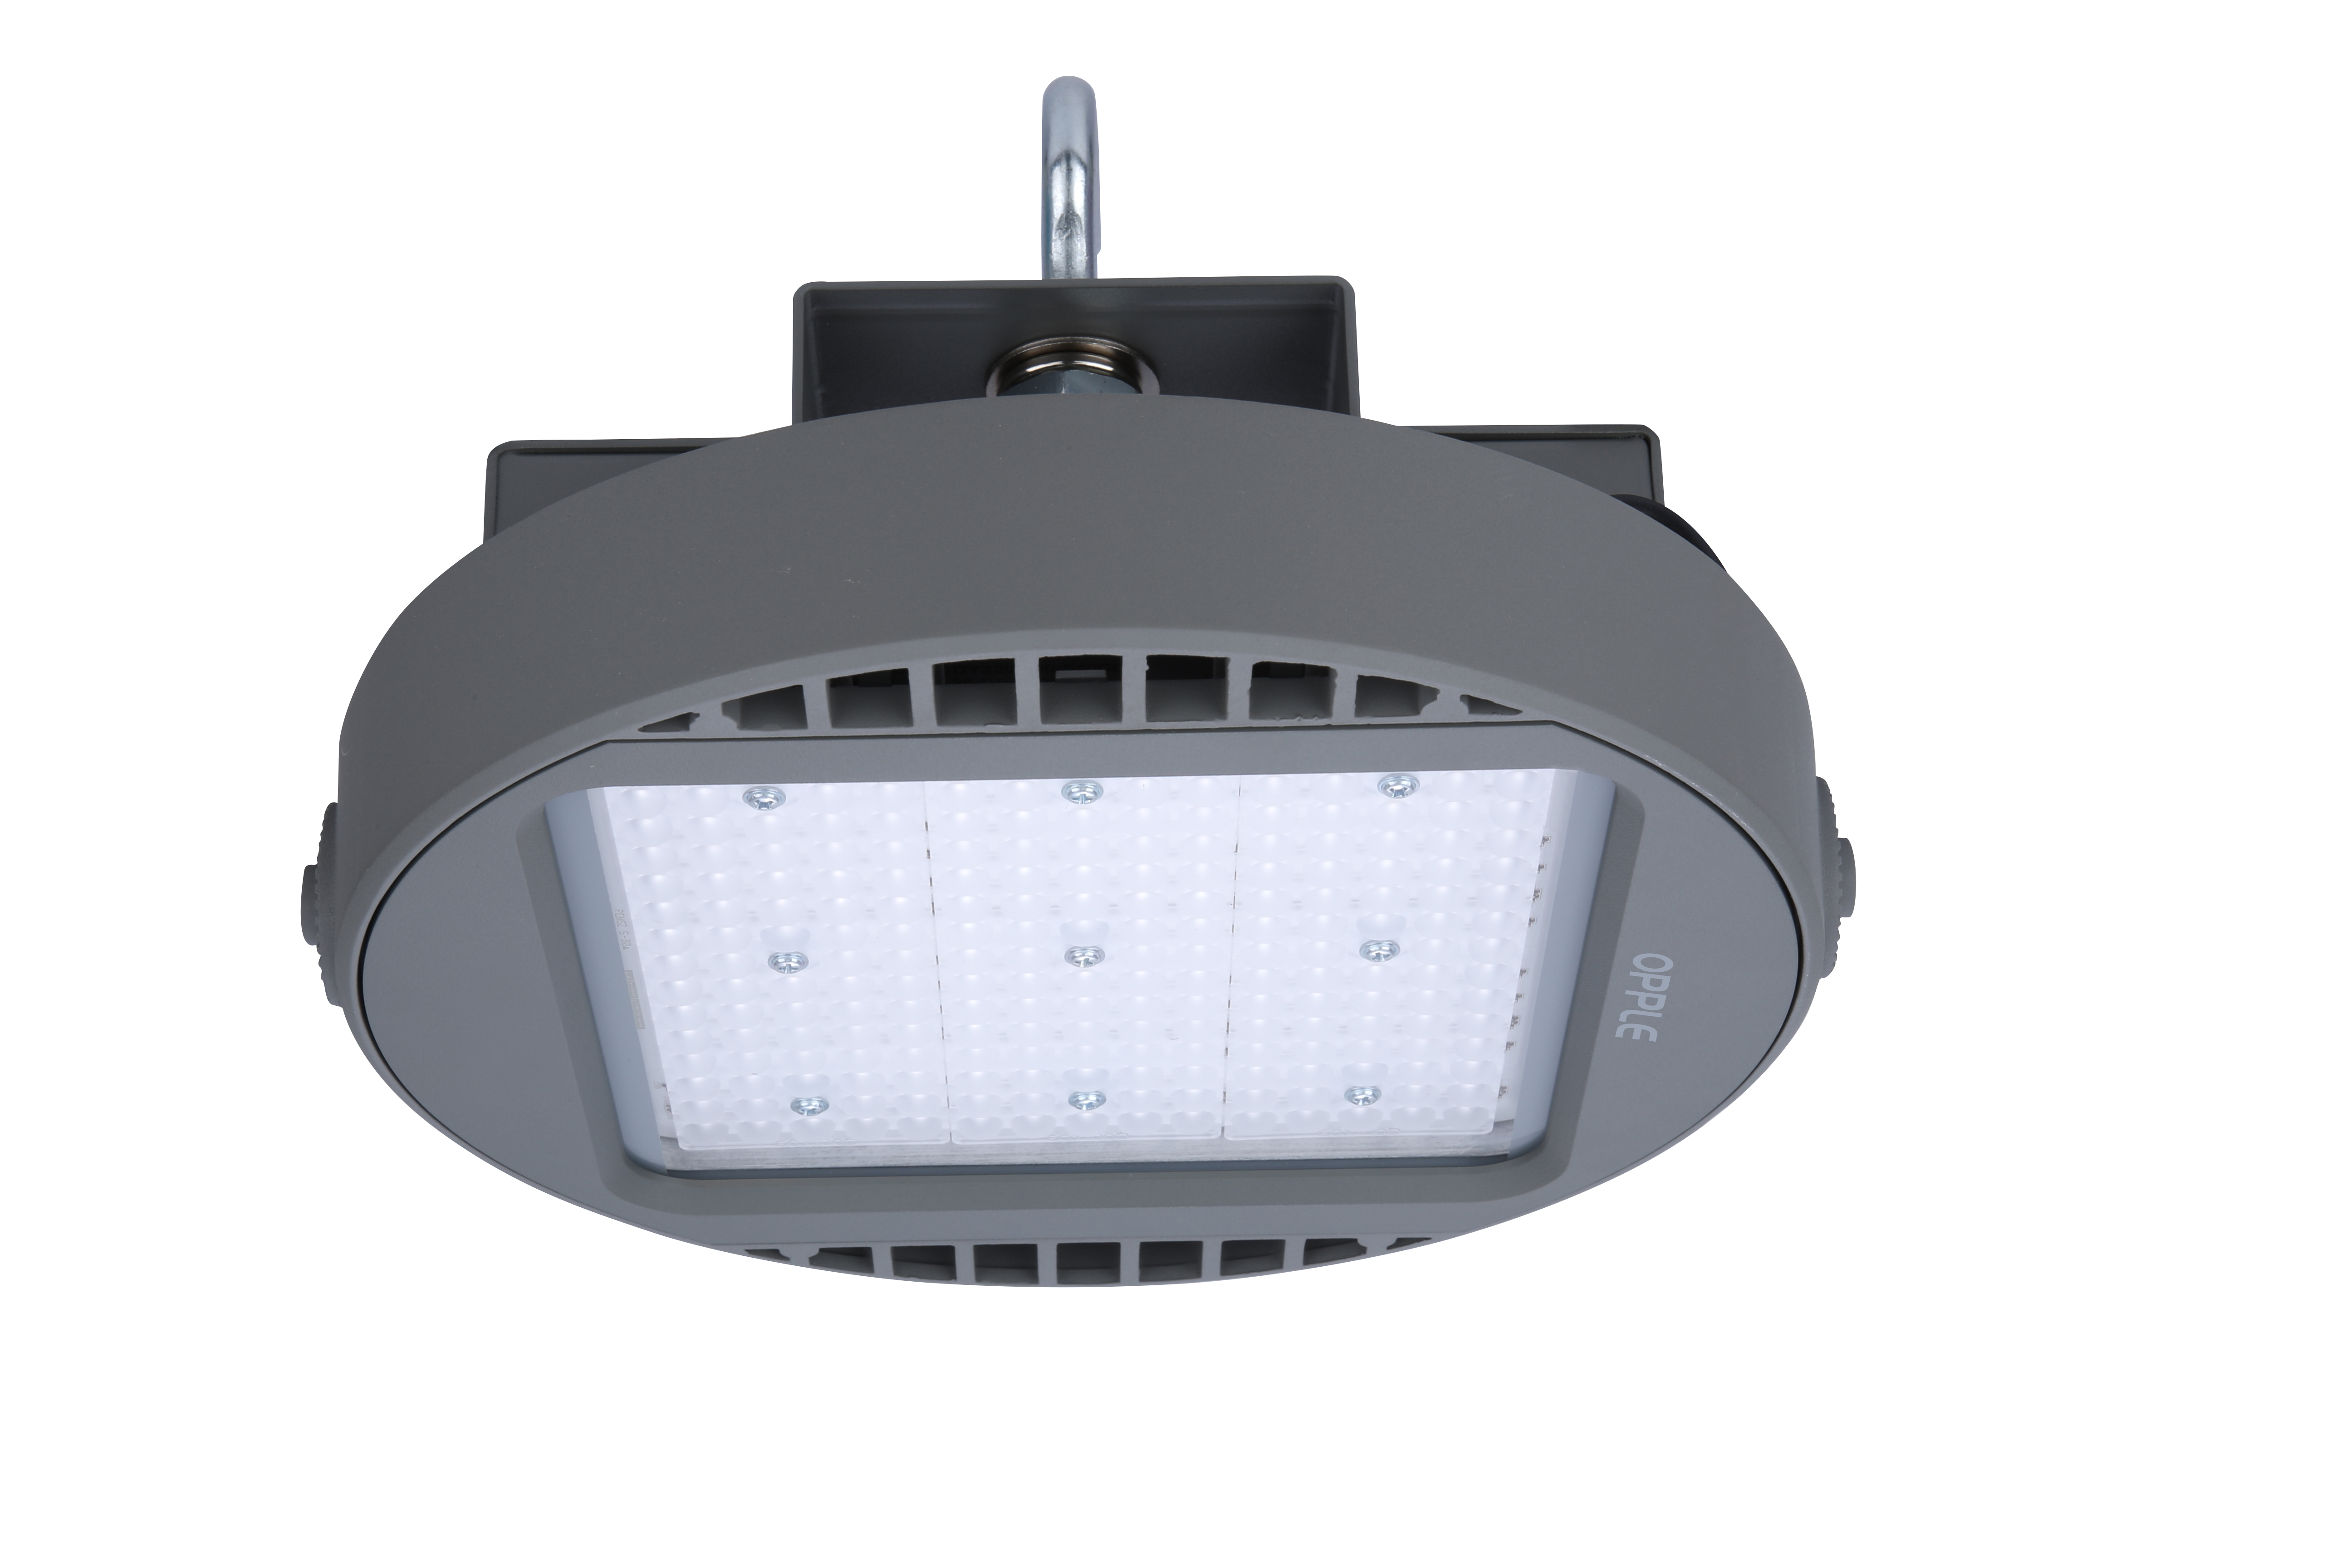 Plafoniere Industriali A Led : Sospensione industriale led perfomer g opple lighting